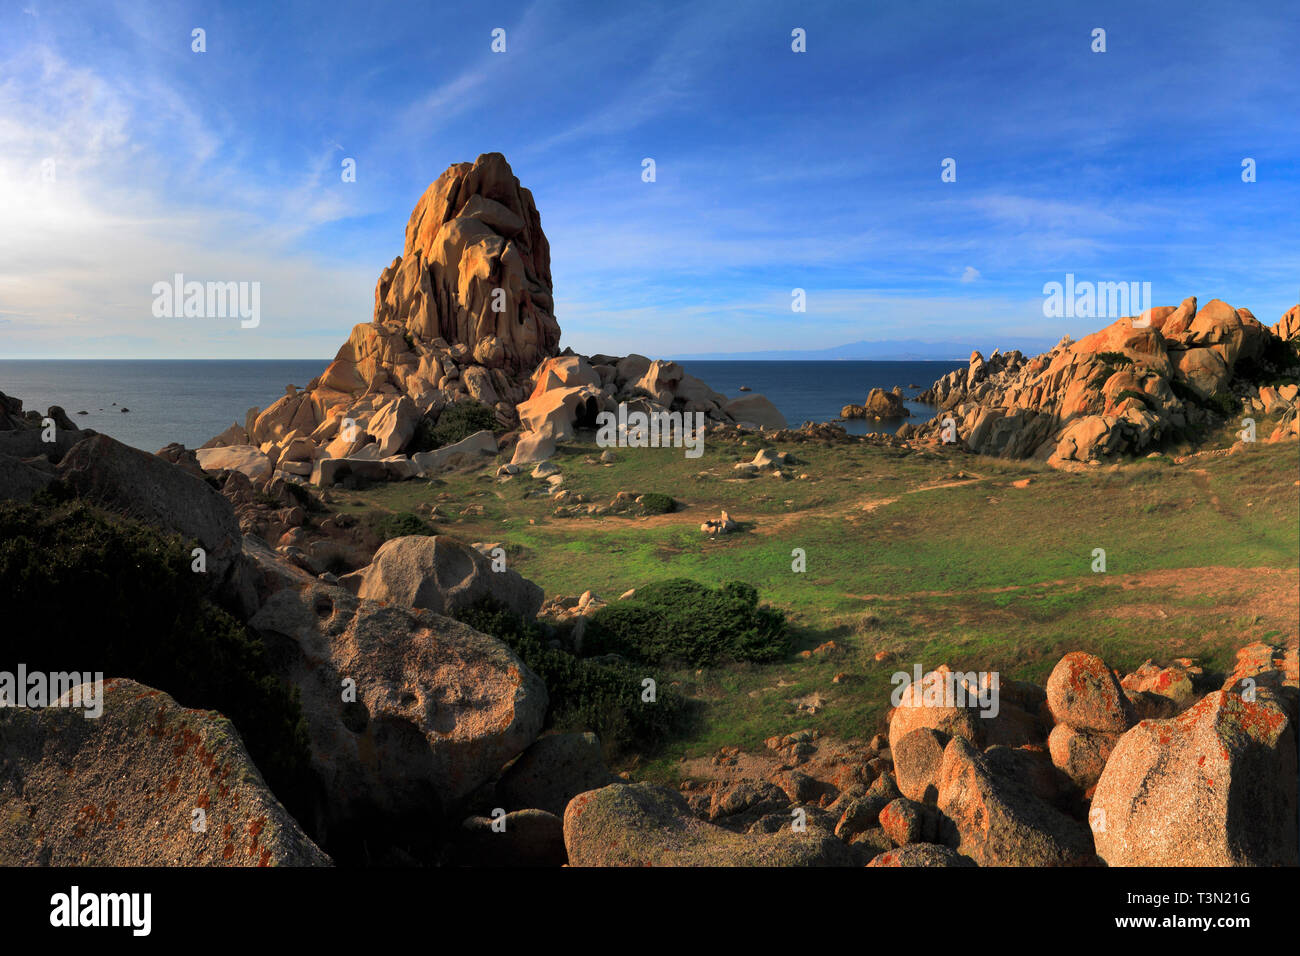 An amazing display of granite rocks at Capo Testa, a wonderful rocky promontory at the very northern tip of Sardinia, Italy - Stock Image